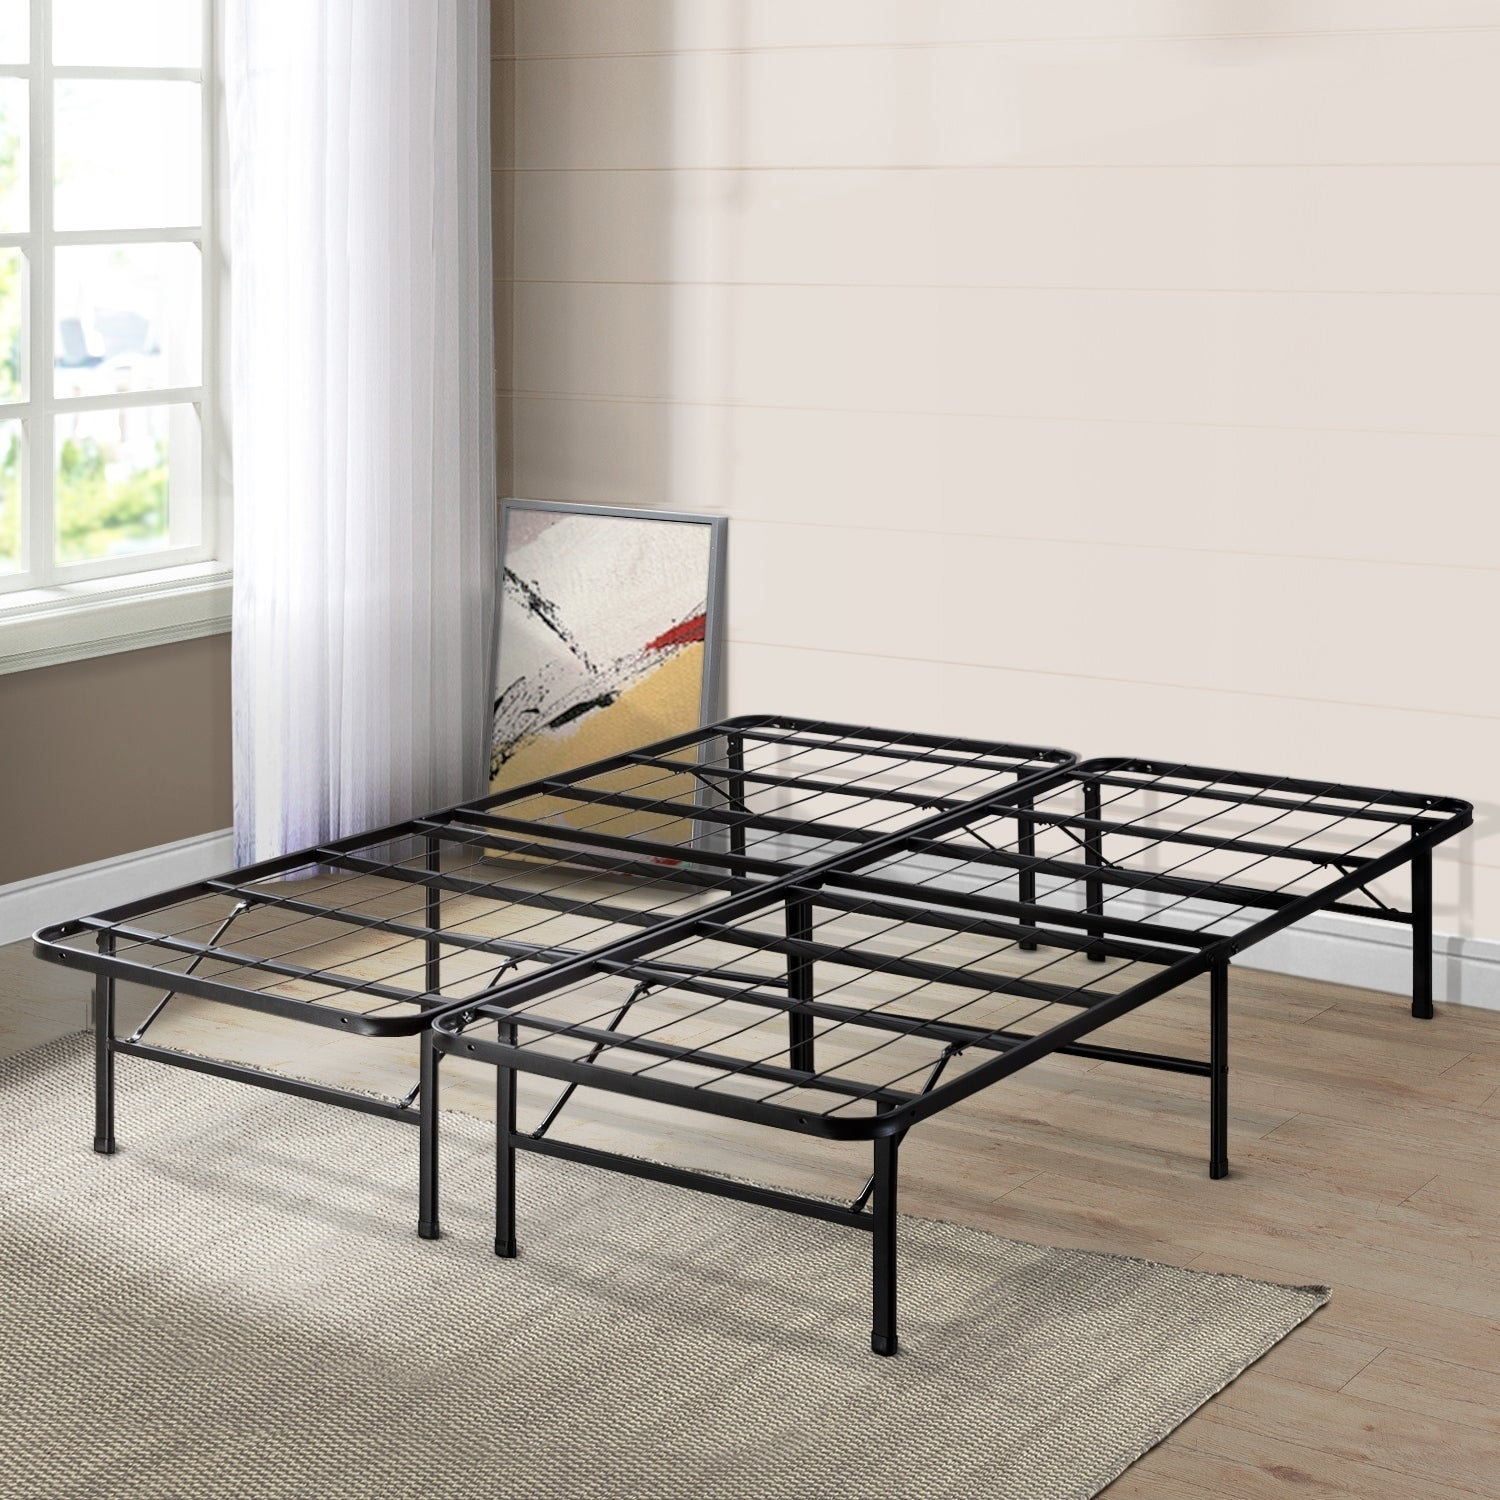 Crown Comfort 14-inch Queen-size Platform Bed Frame (Quee...